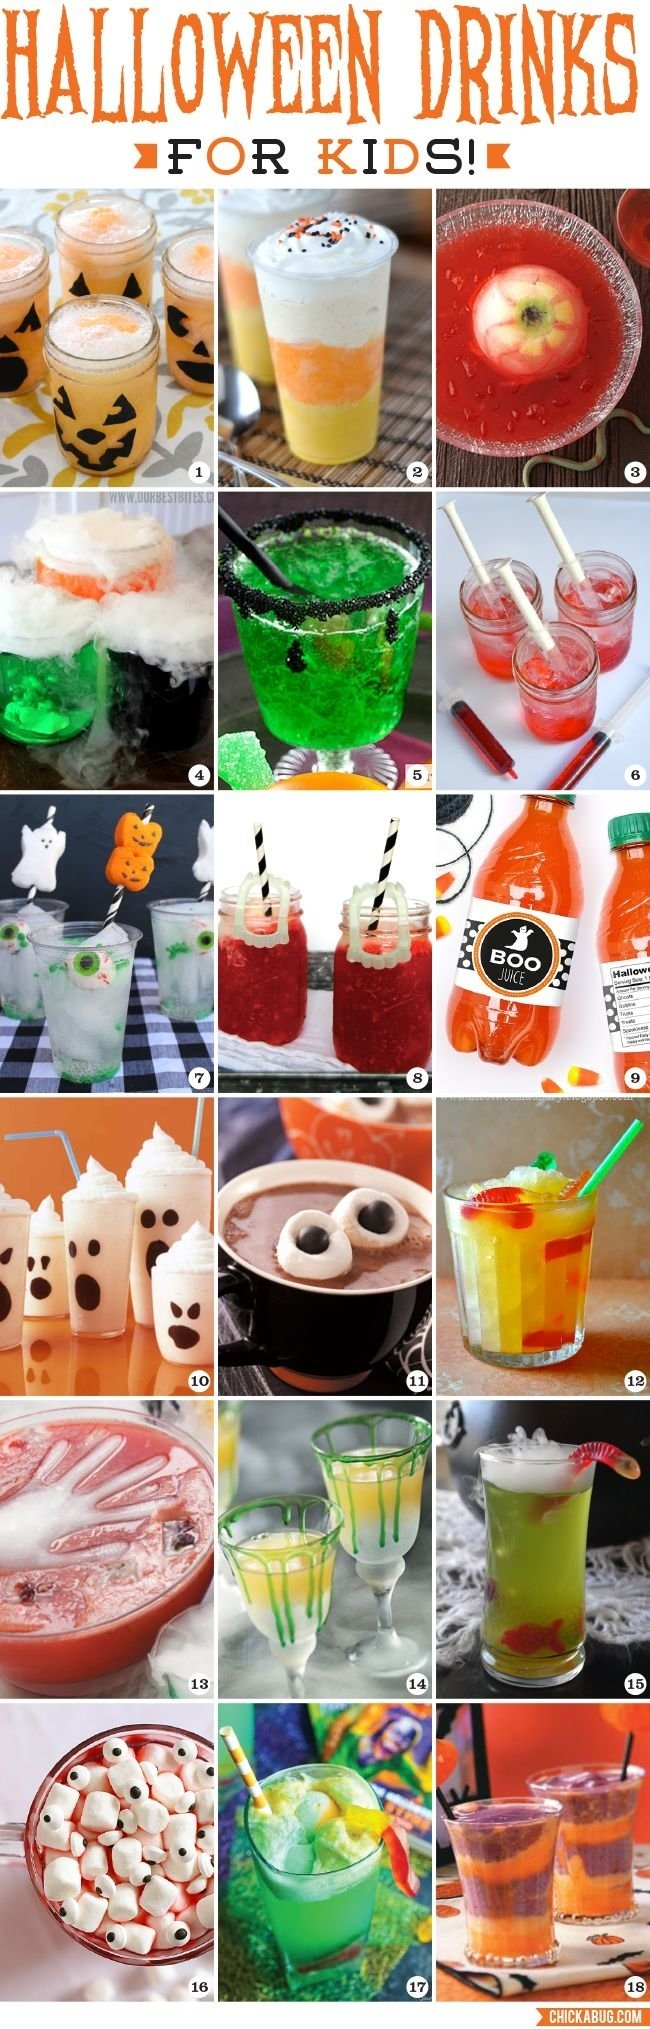 10 Amazing Halloween Drink Ideas For Kids halloween drinks for kids halloween parties easy and recipes 2021